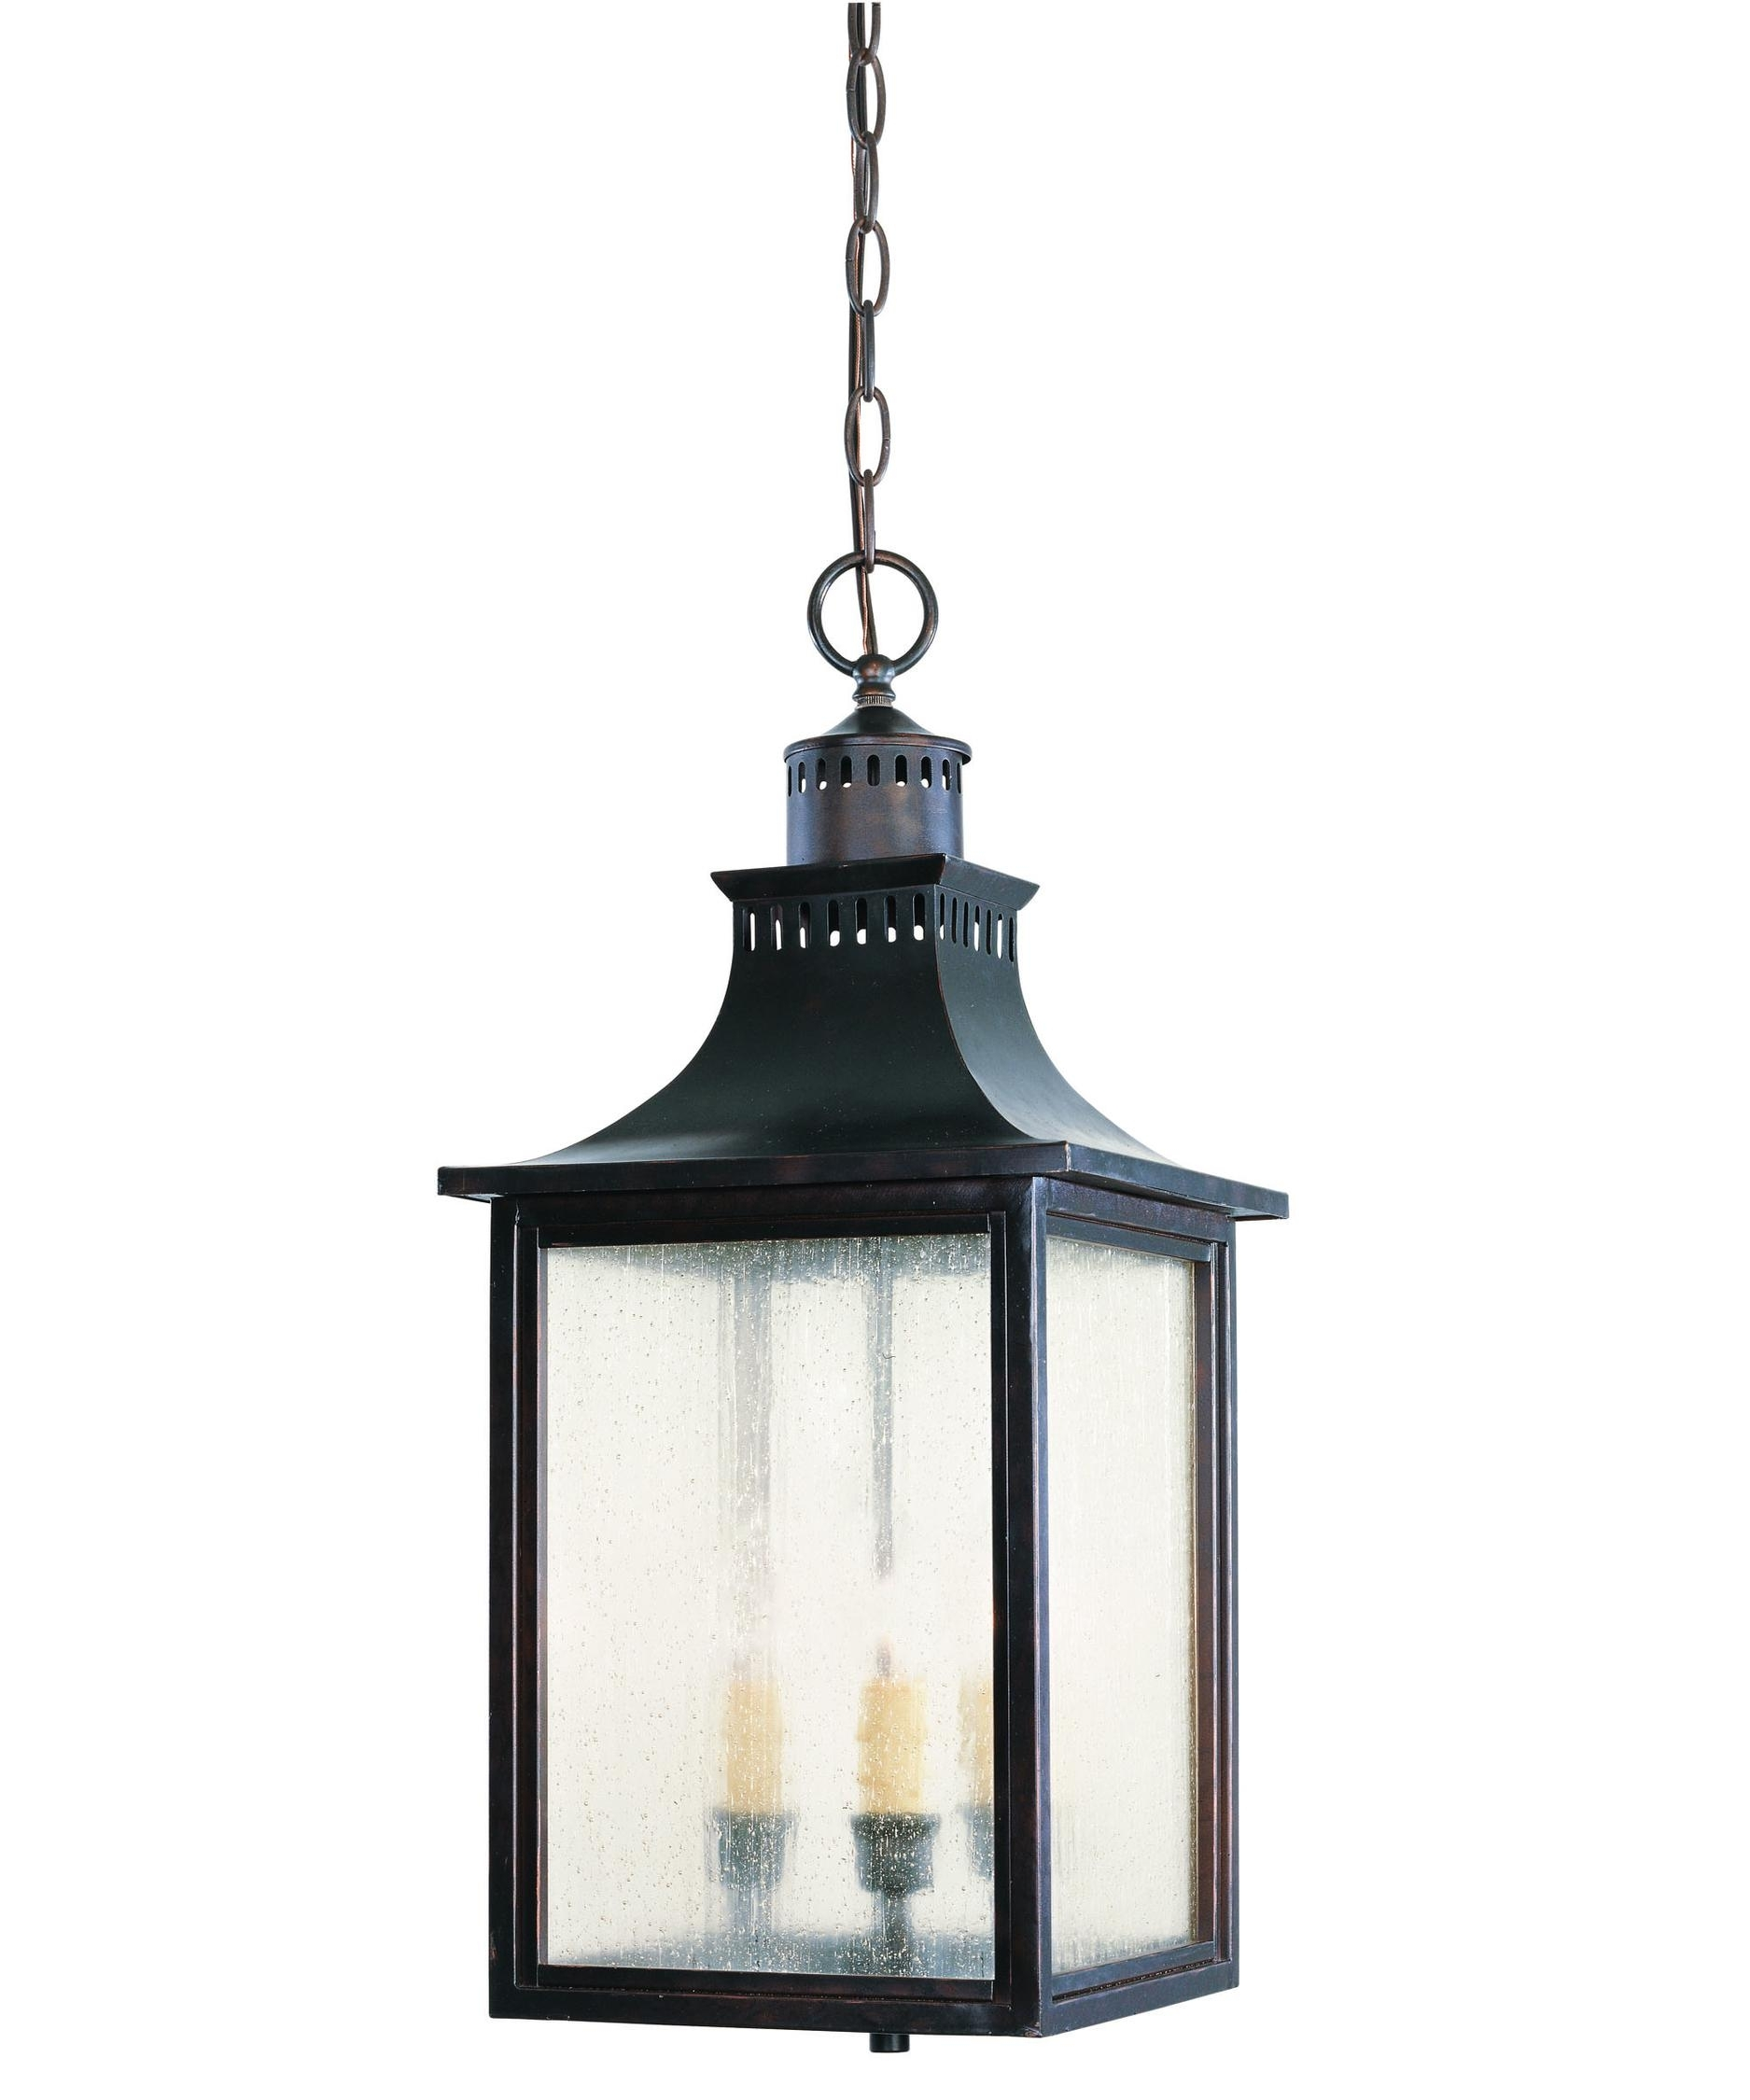 Savoy House 5-256 Monte Grande 10 Inch Wide 3 Light Outdoor Hanging with Outdoor Pendant Lanterns (Image 15 of 20)